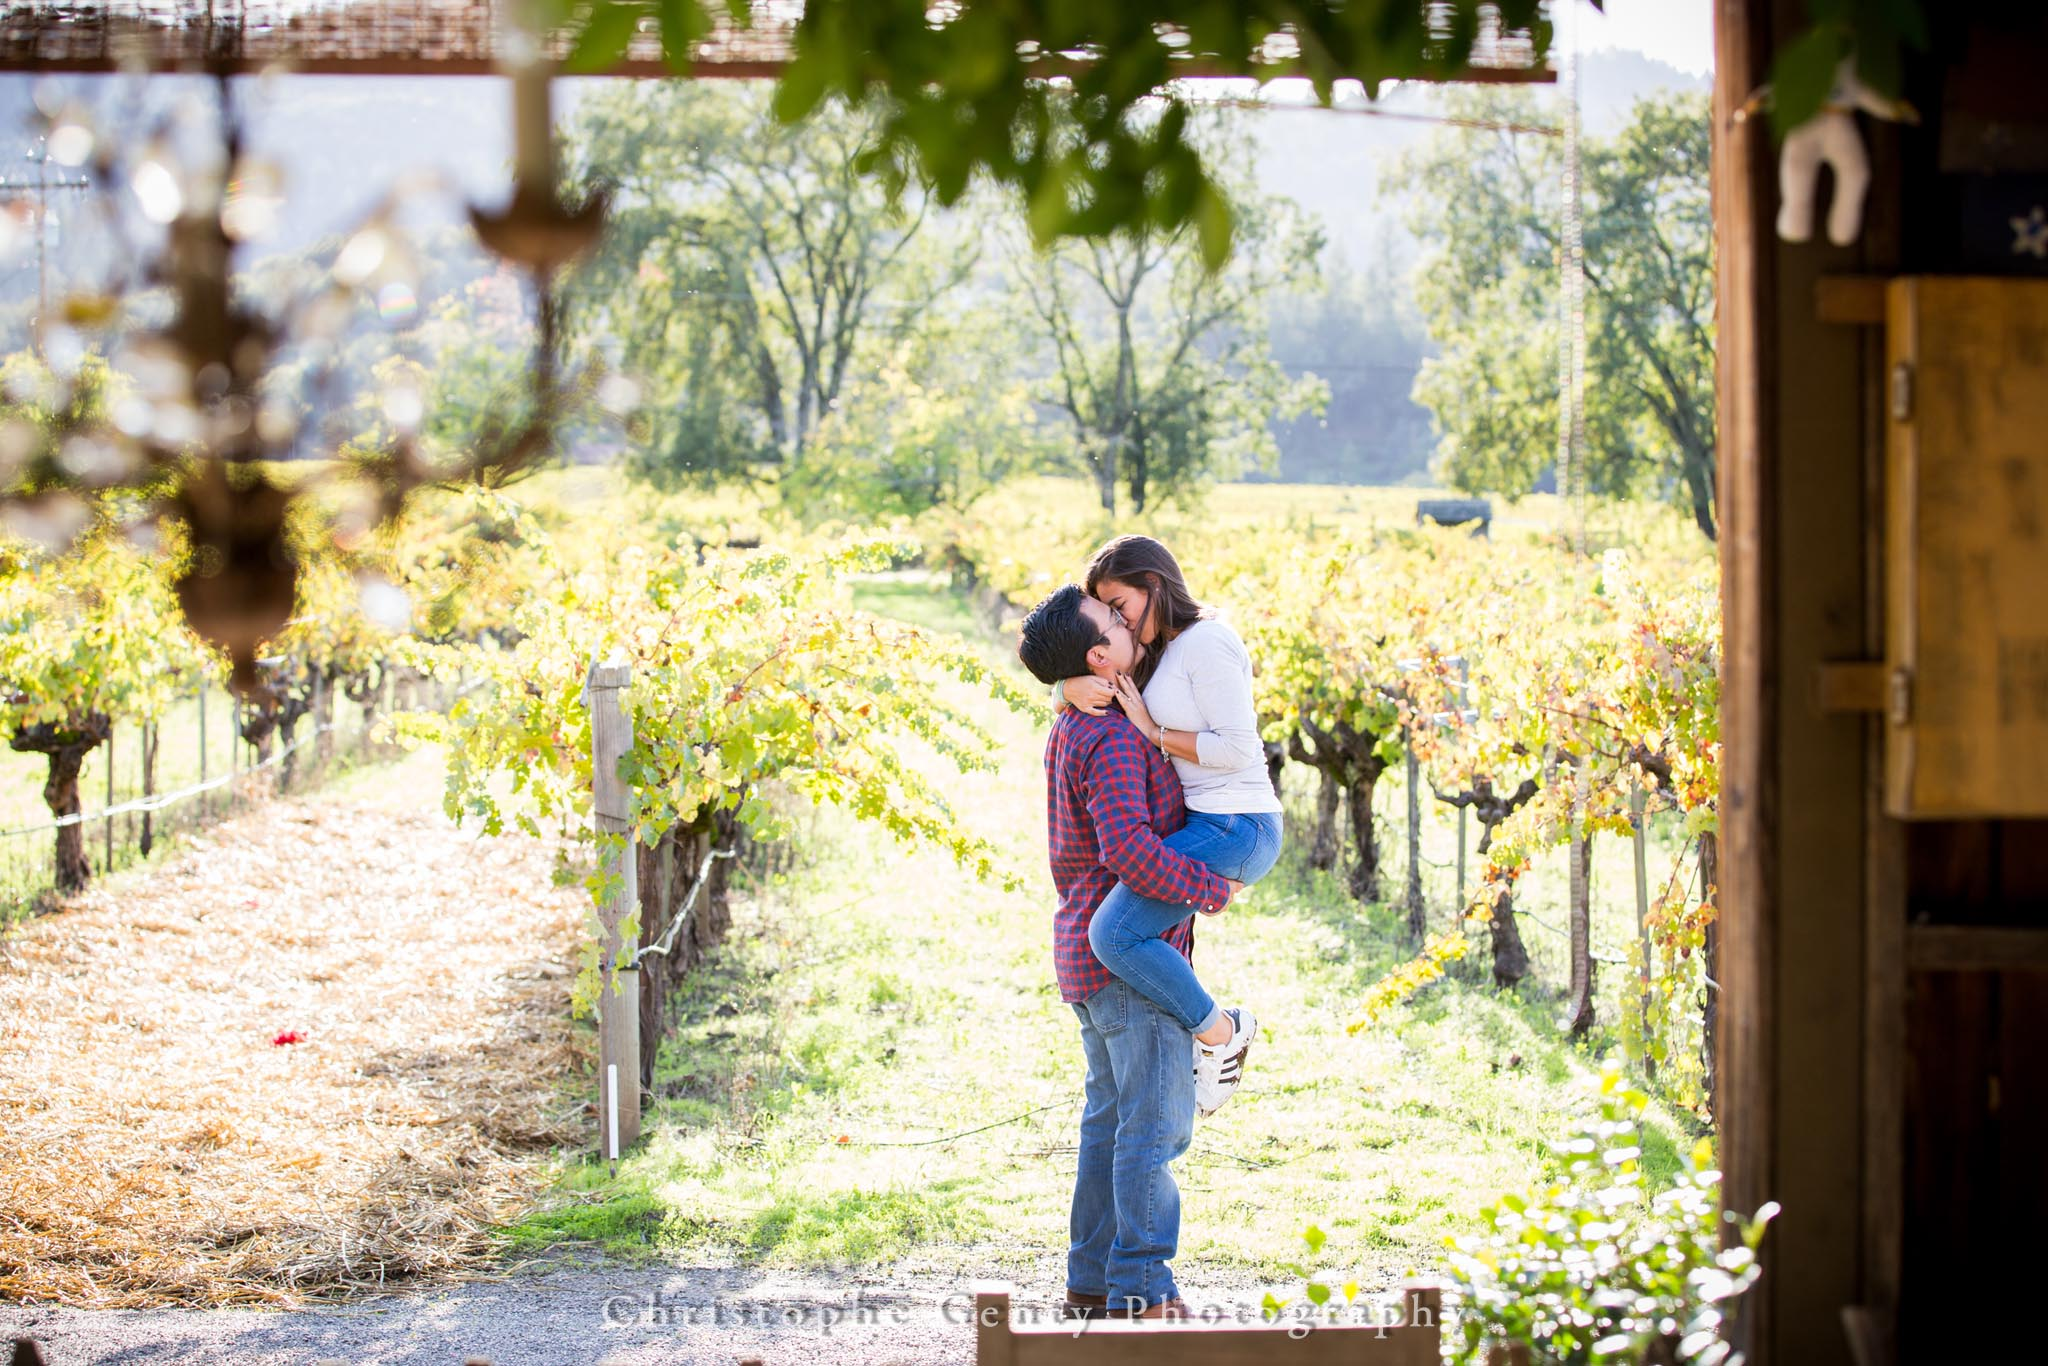 TudalWinery-Marriage-Proposal-Photography-127